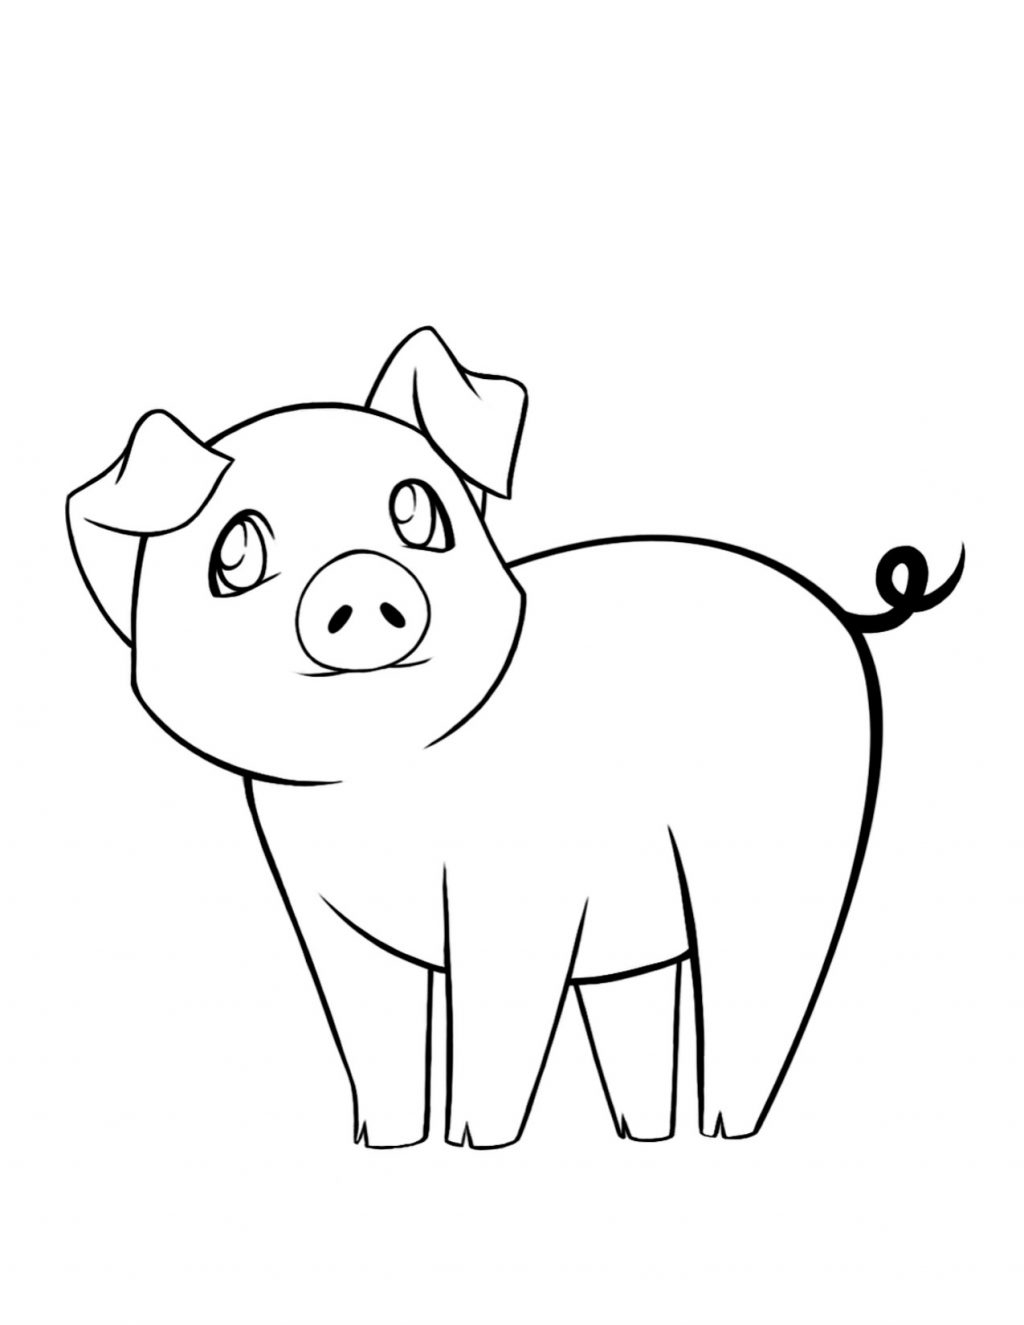 Free Guinea Pig Coloring Pages Fresh Adult Pig Coloring Pages Drawing Pigs To Color Free Coloring